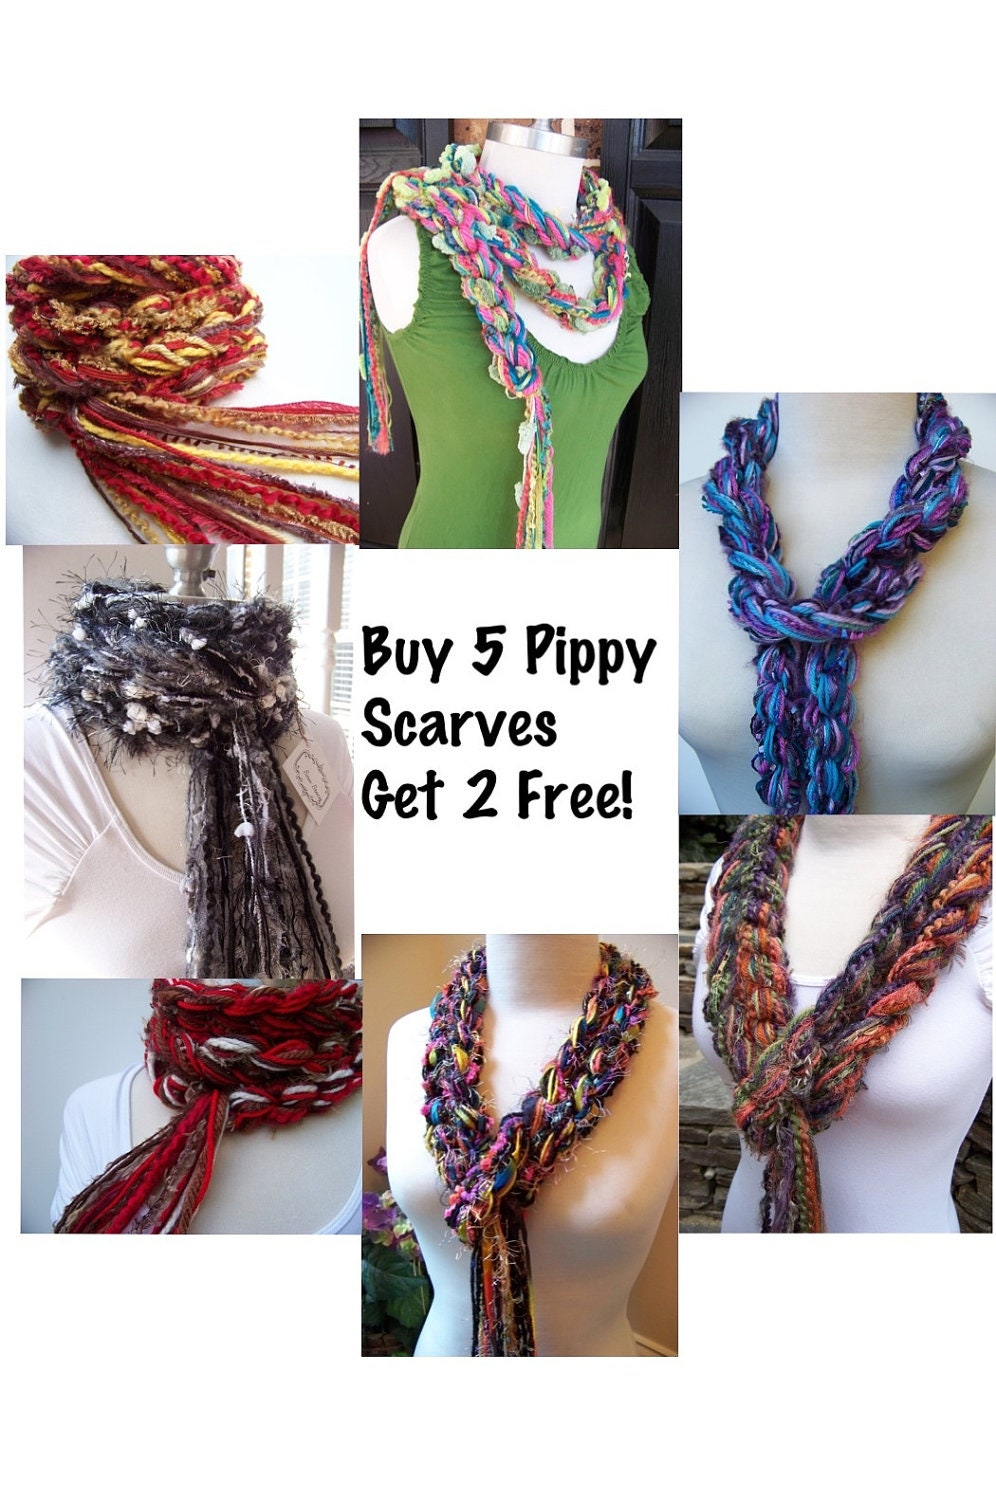 Scarves Crochet Scarf Knit Scarves Buy 5 Get 2 Free Scarf Sale Crochet Scarf For Sale